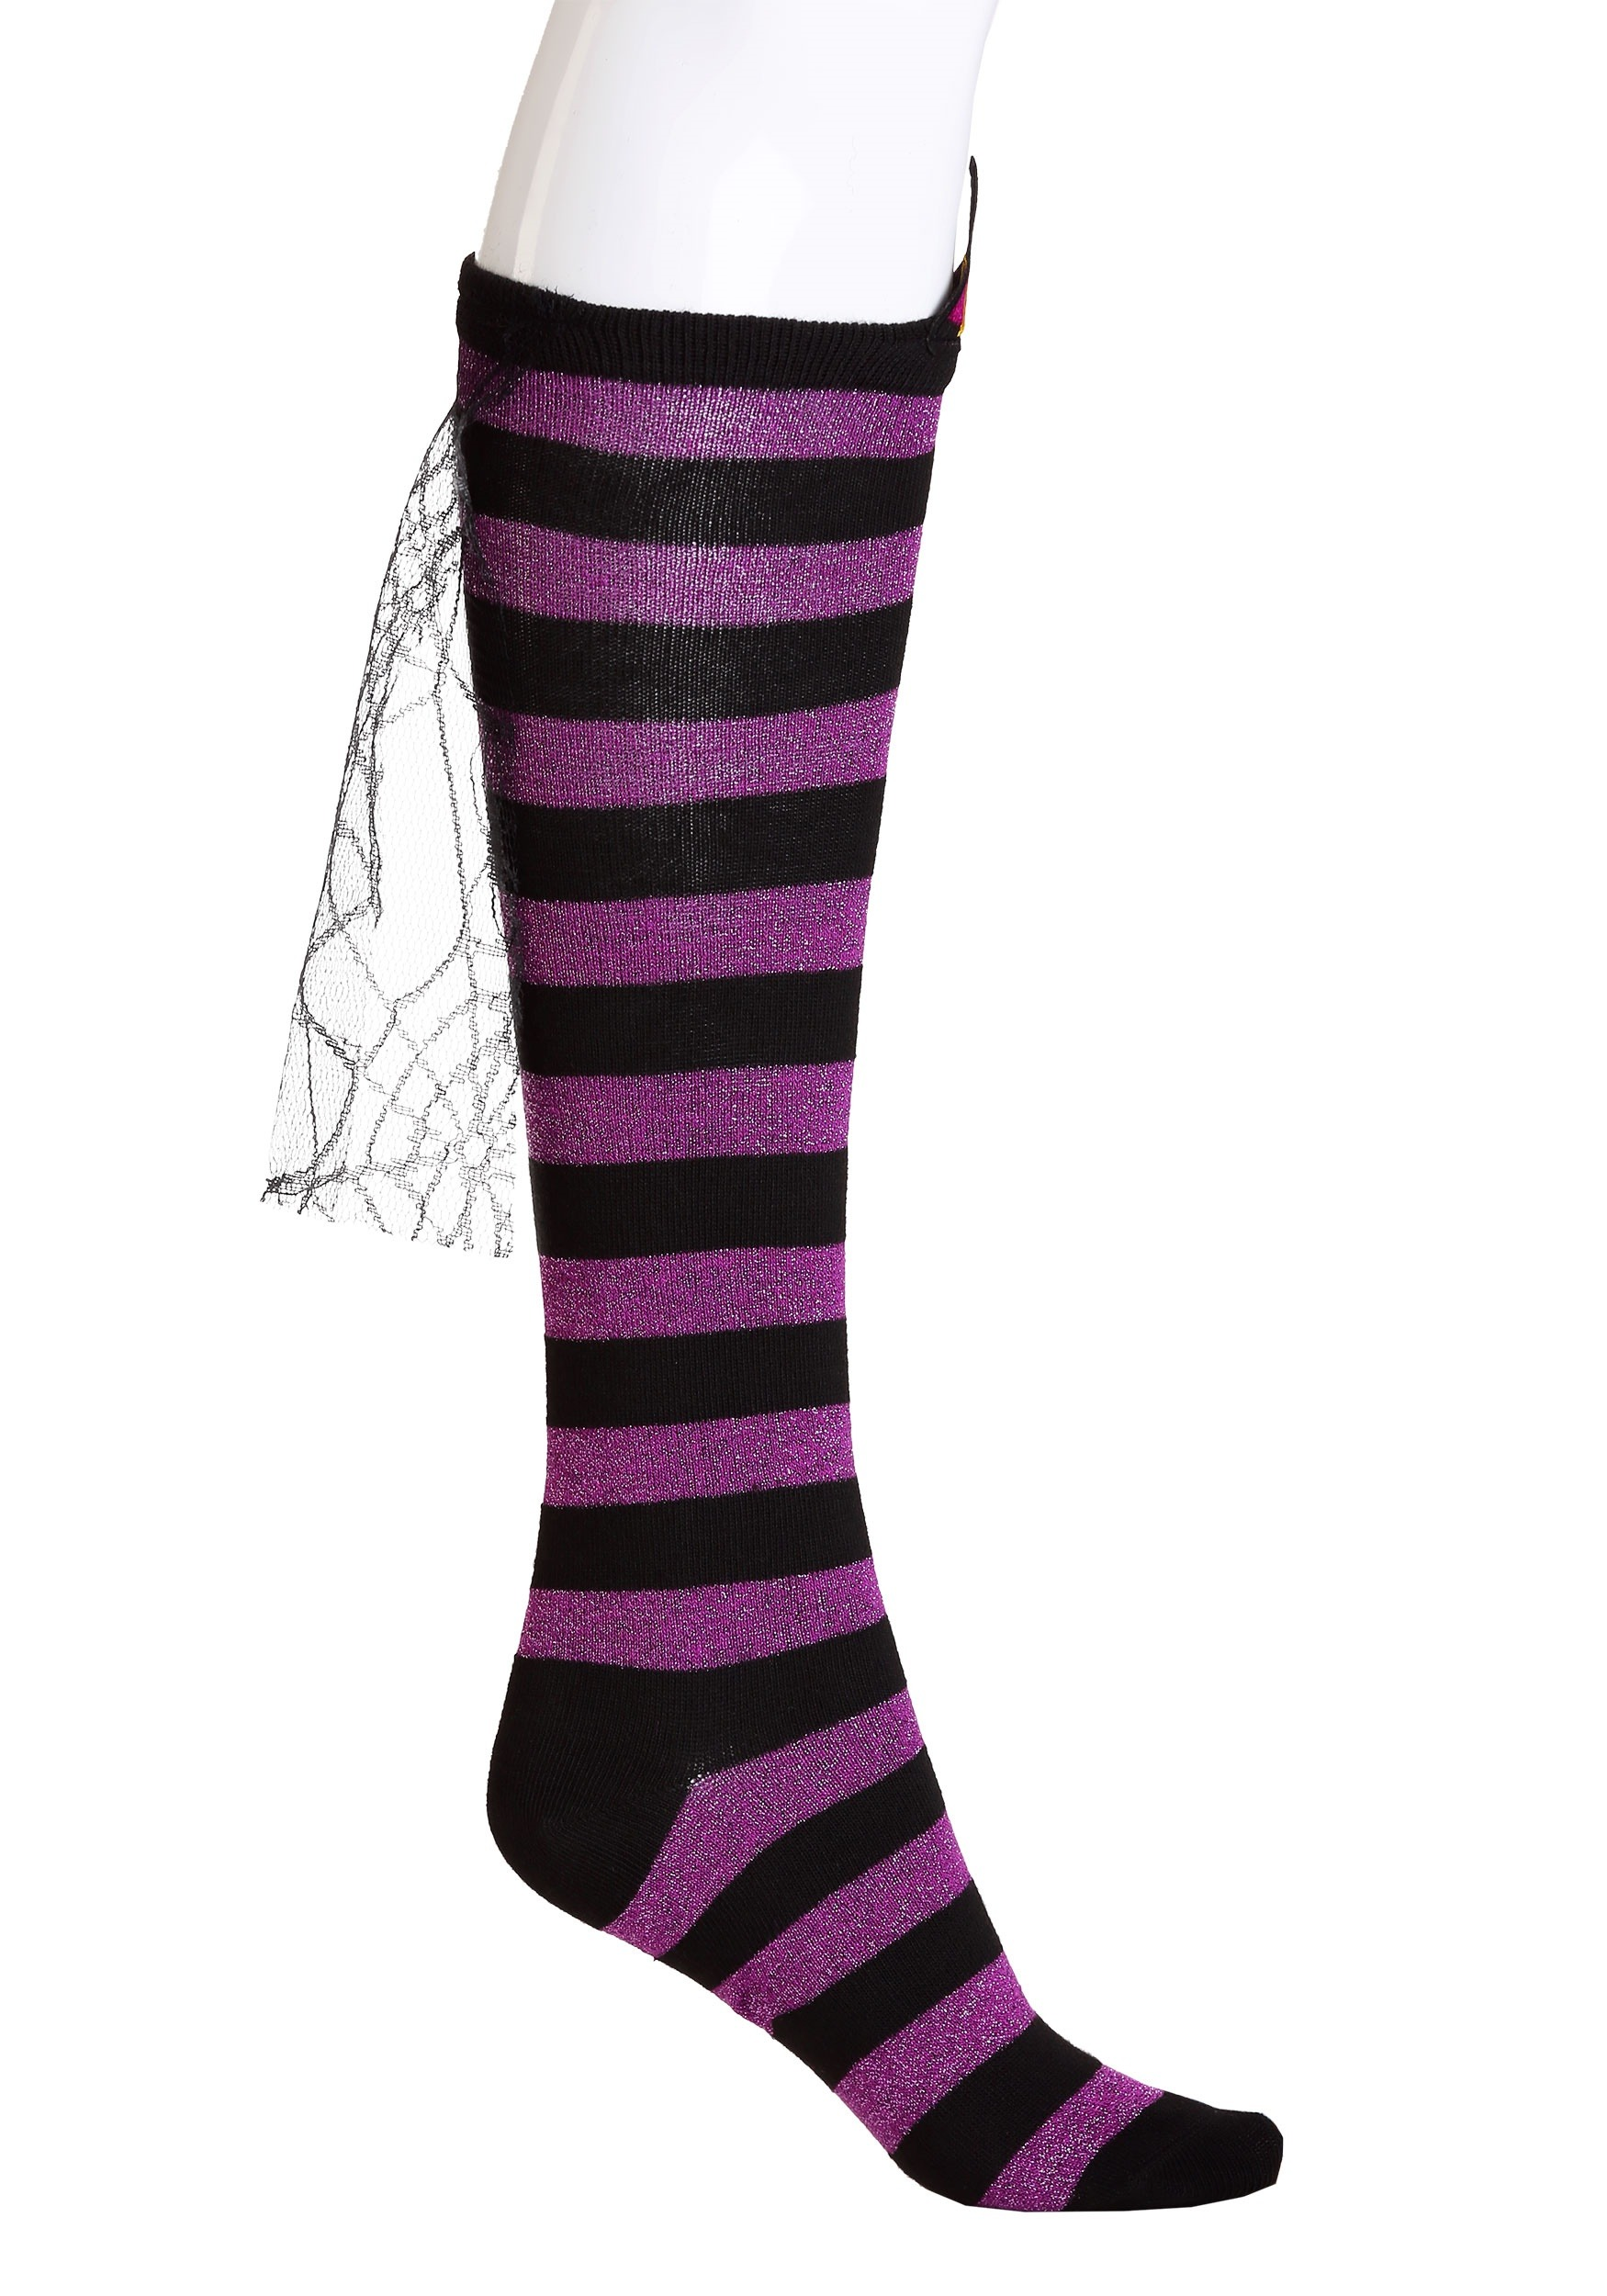 a2e853c75c7 Novelty Witch Knee High Women s Socks Main